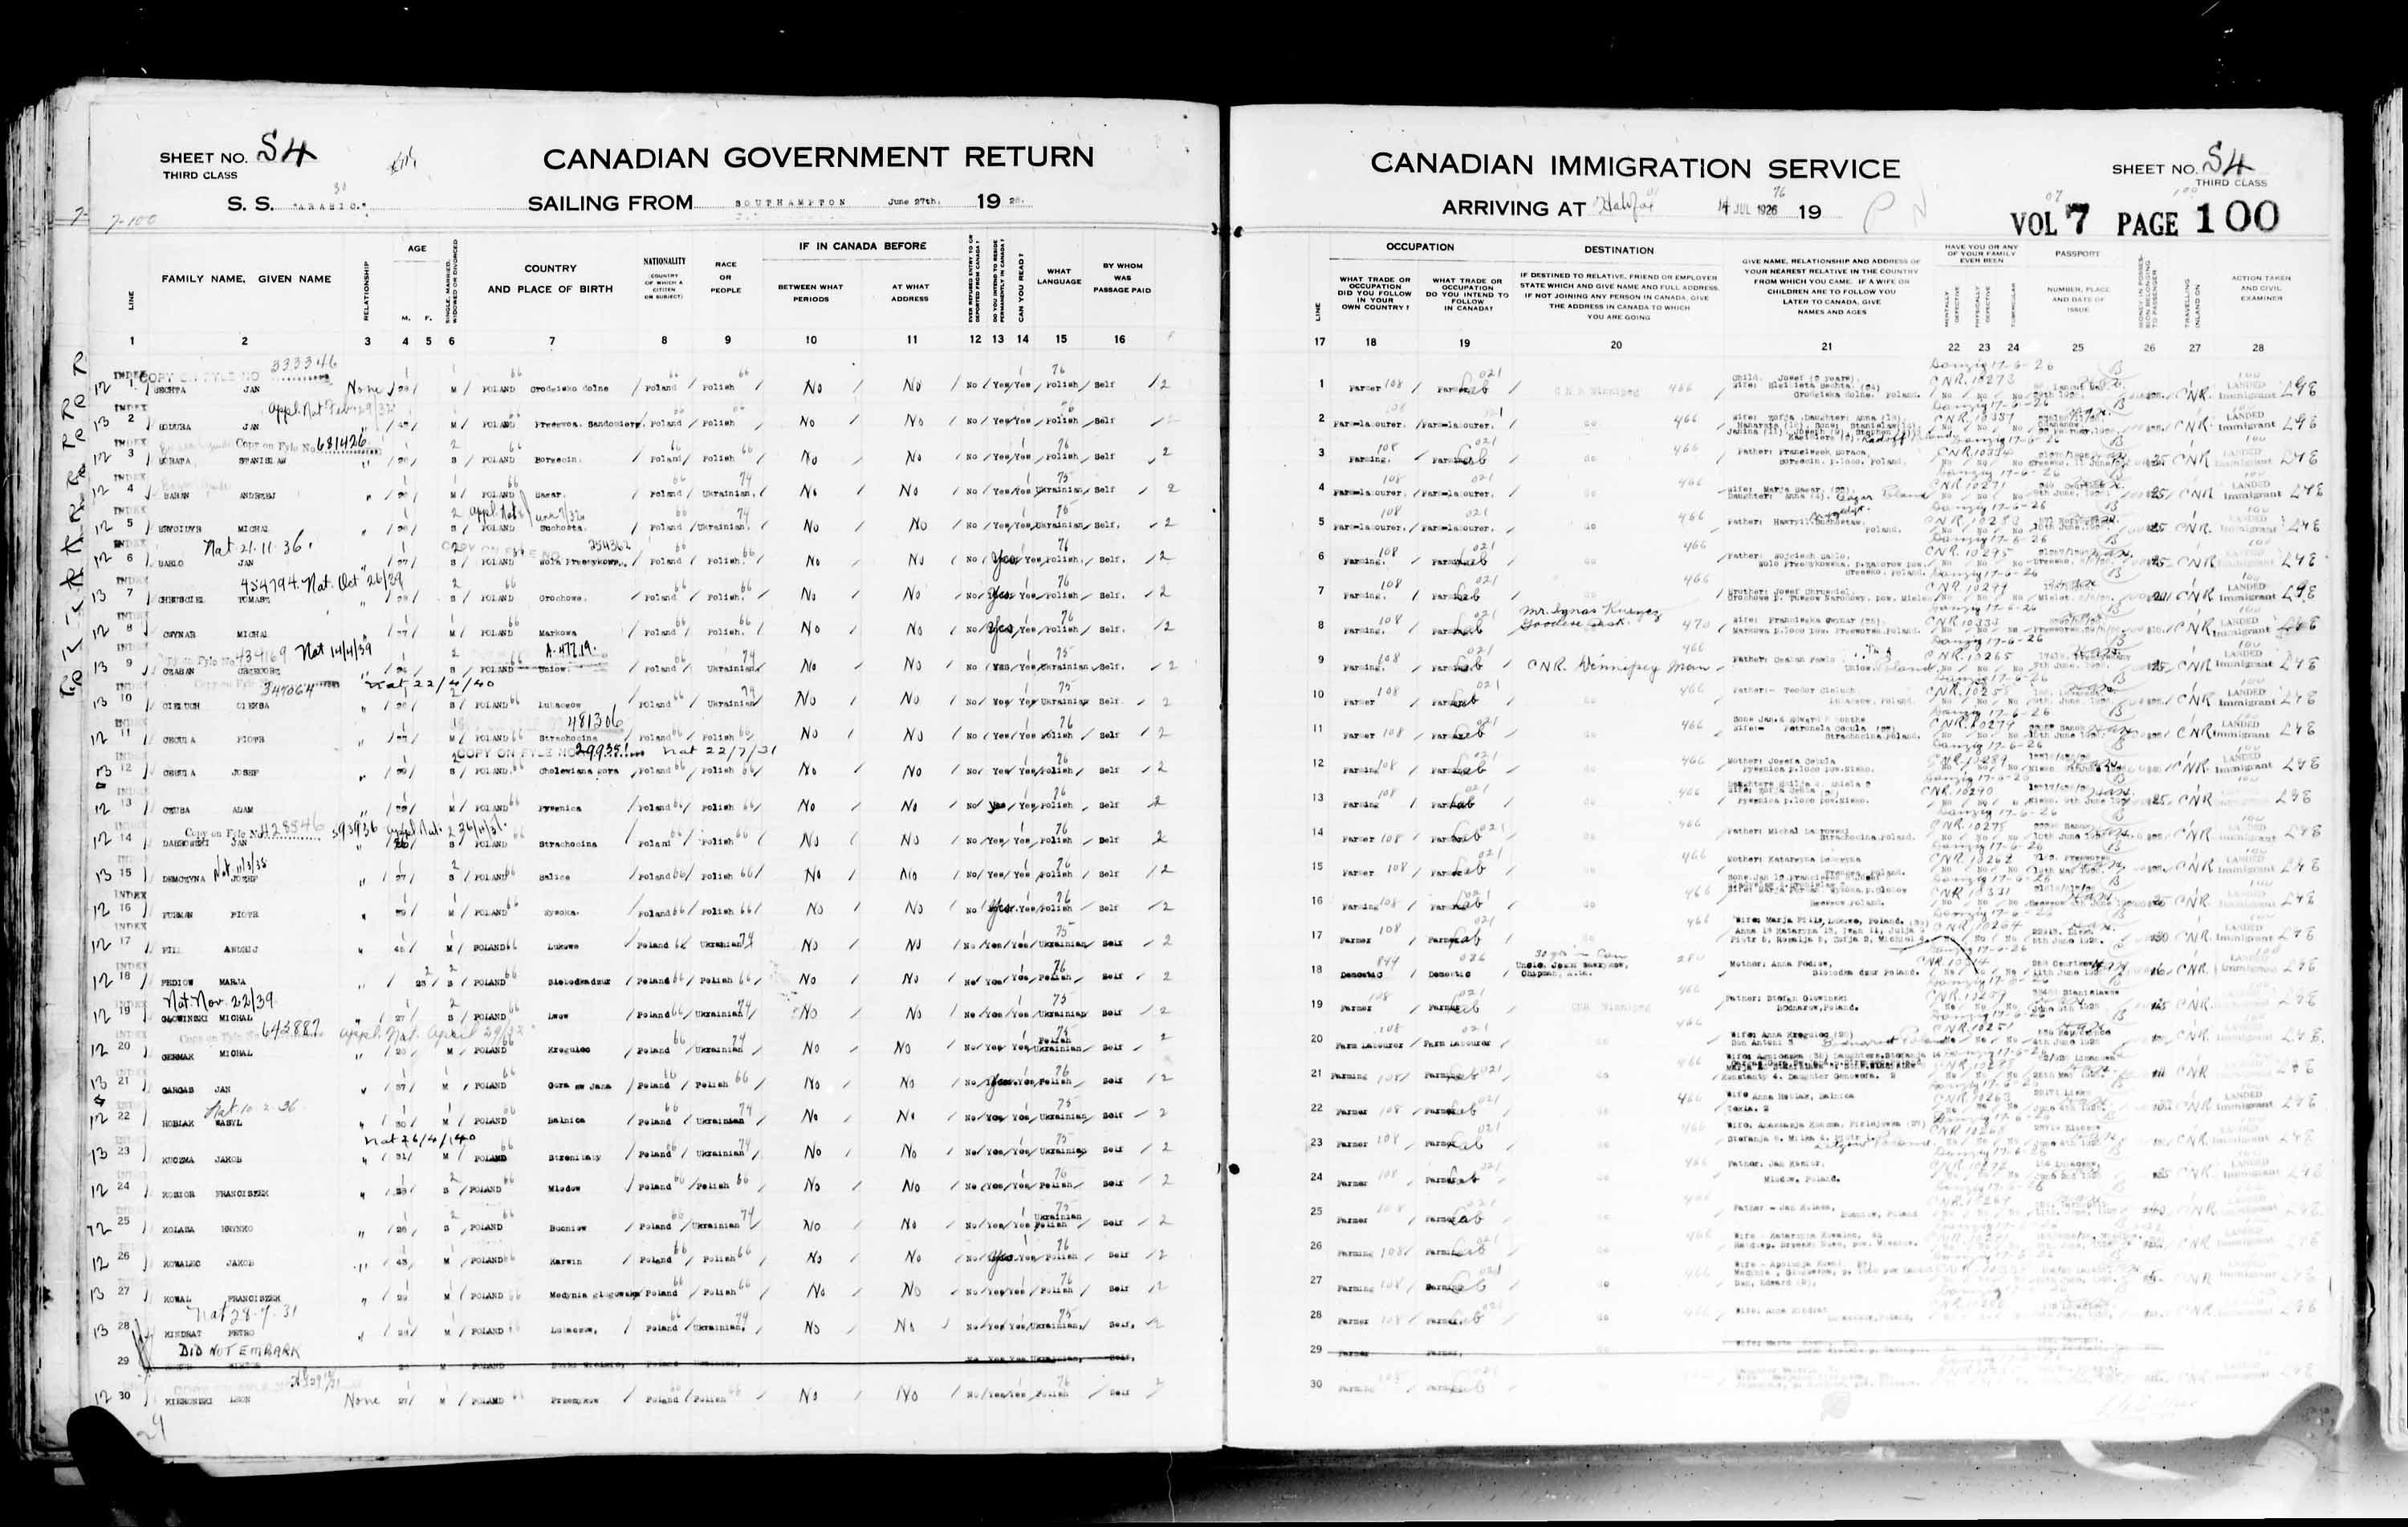 Title: Passenger Lists: Halifax (1925-1935) - Mikan Number: 134853 - Microform: t-14805